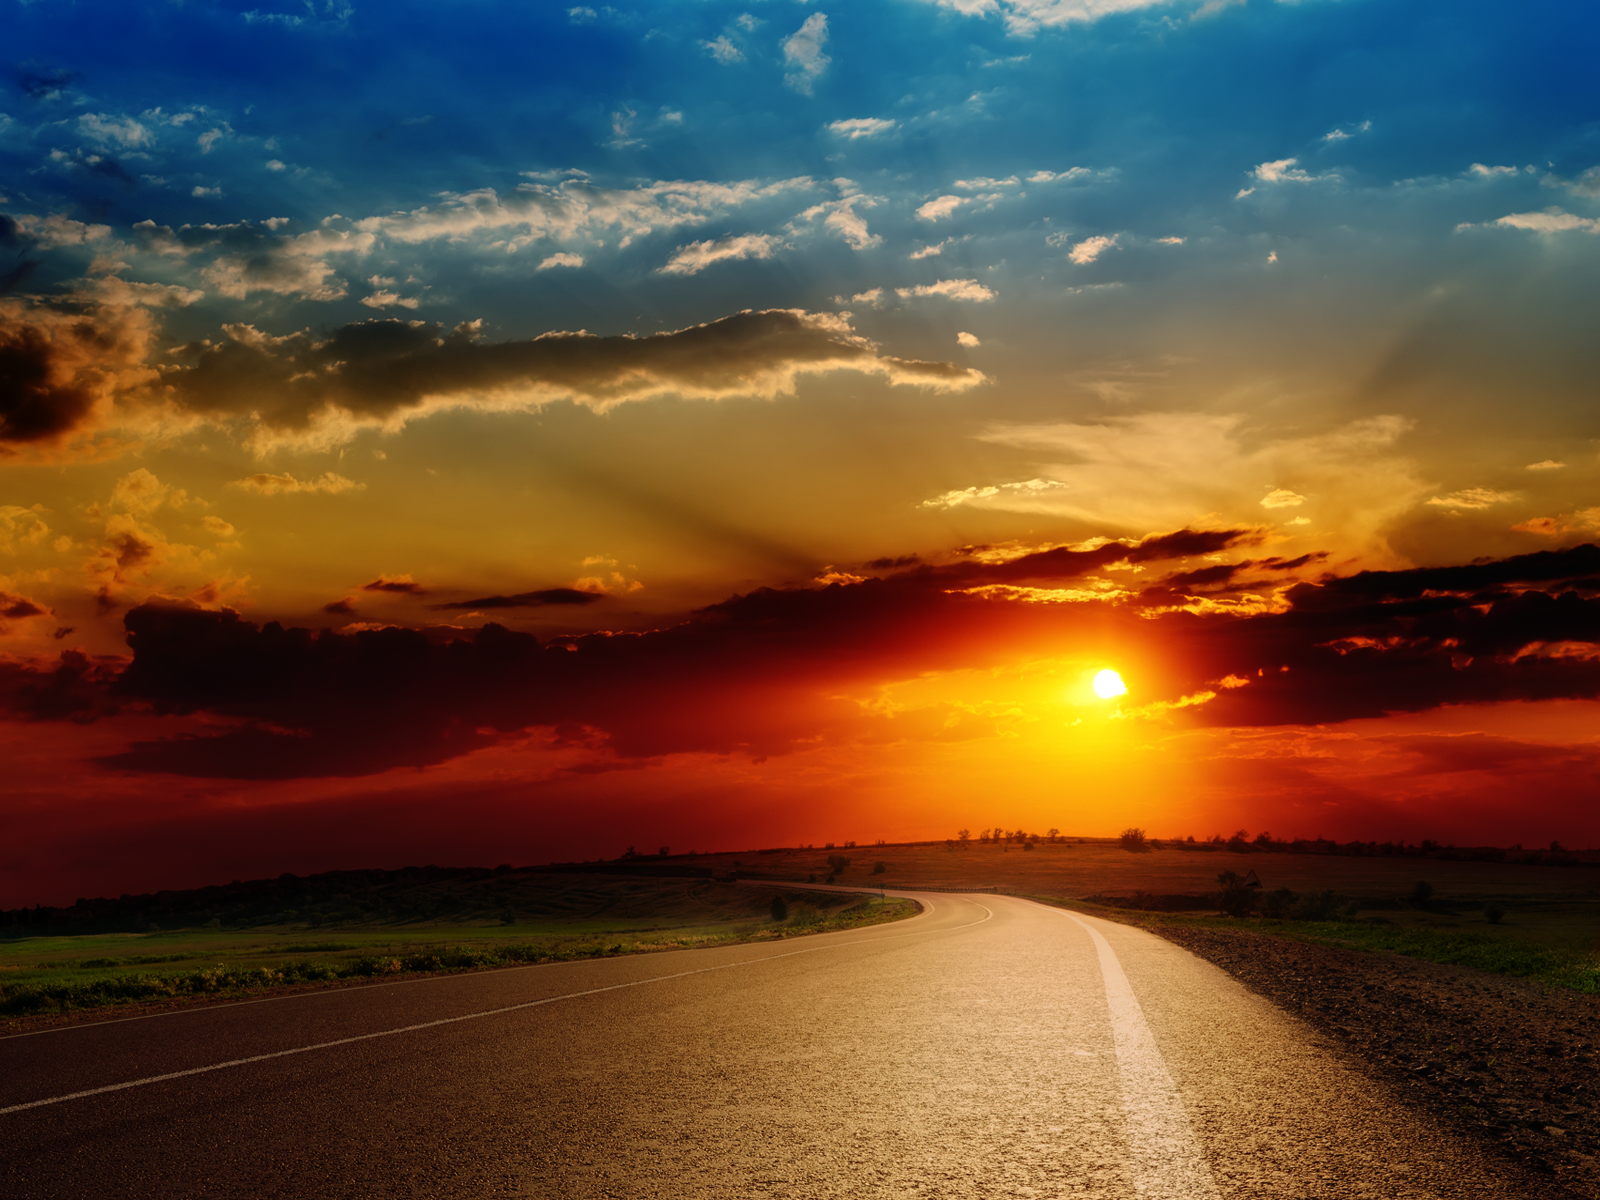 Road Sunset Wallpaper sunset road trip hd wa...